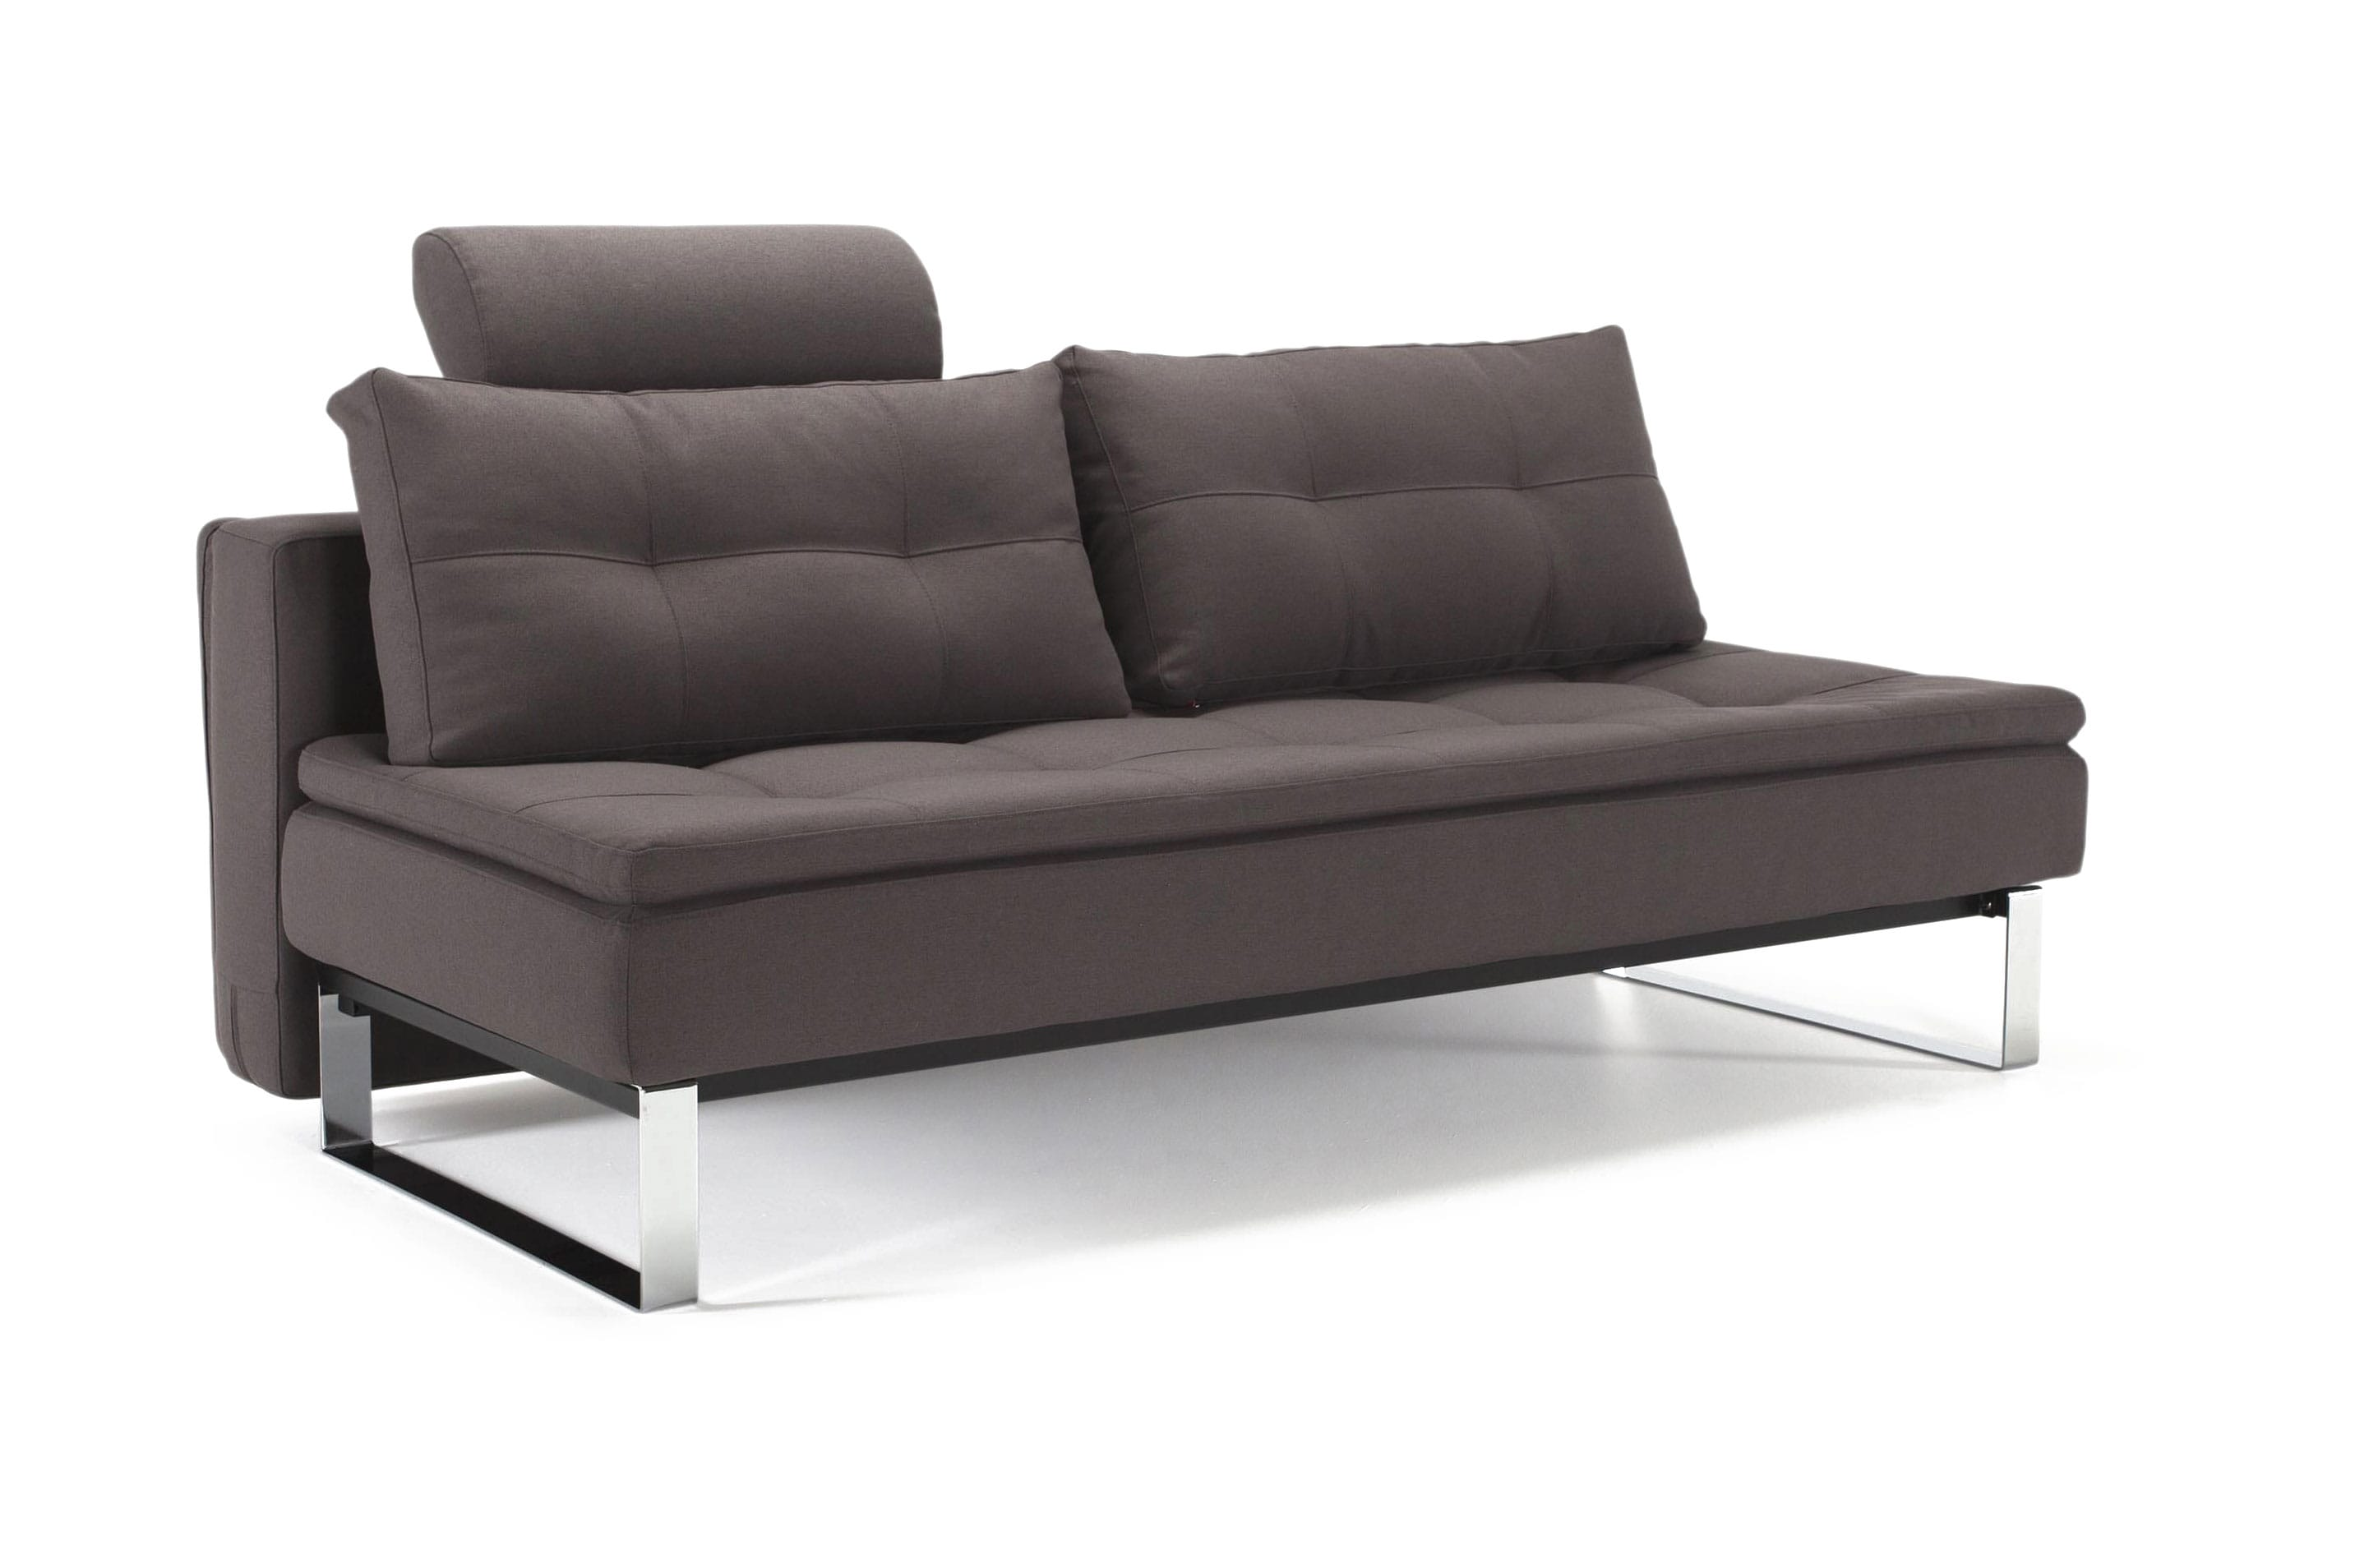 Supremax Dual Sofa Bed (Full Size) Soft Gray By Innovation